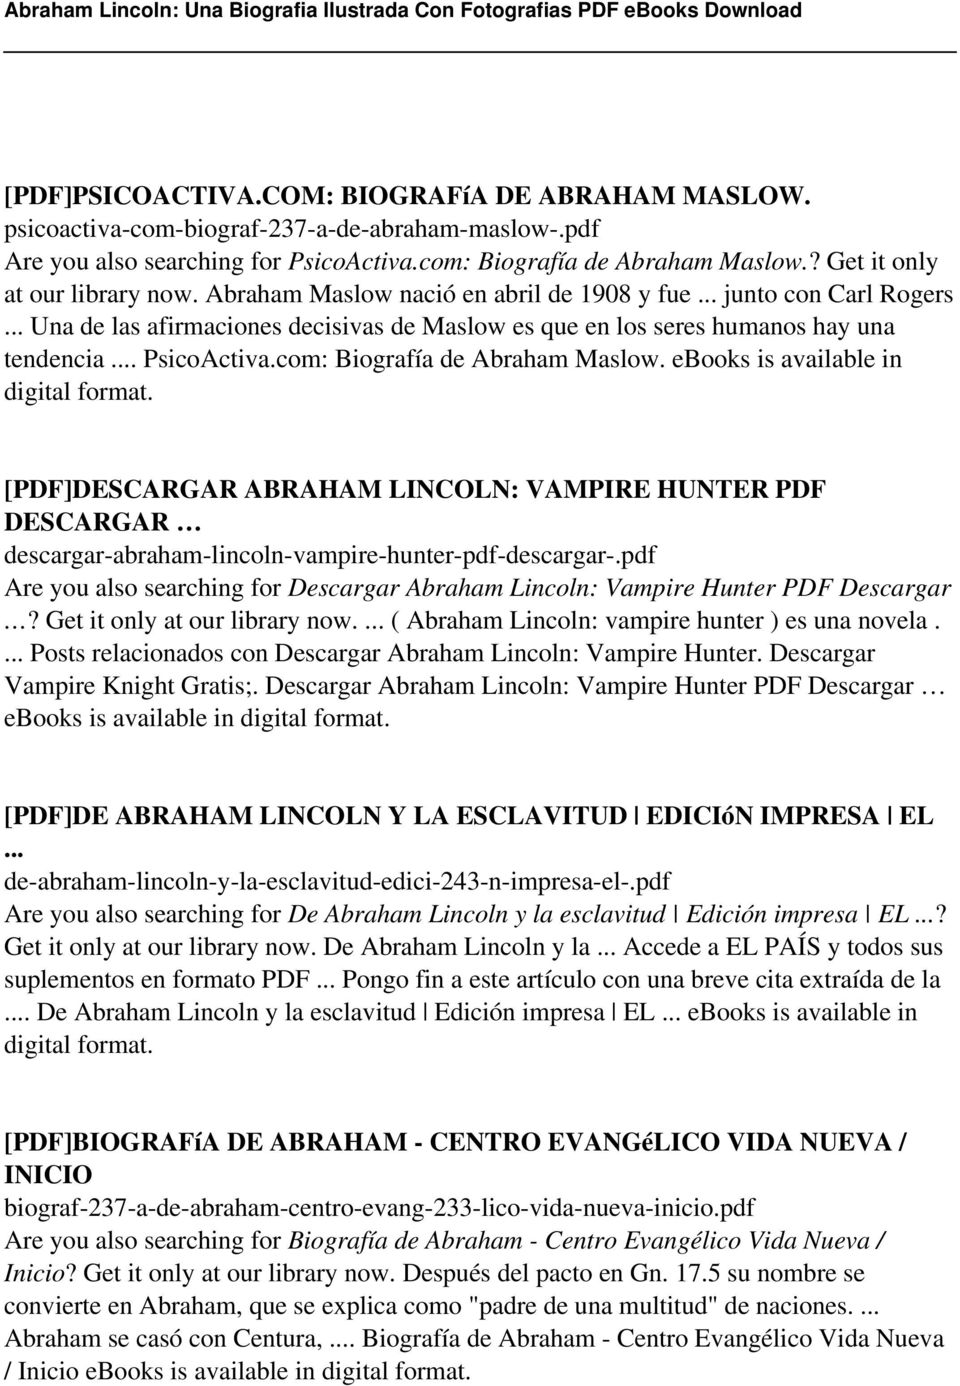 .. PsicoActiva.com: Biografía de Abraham Maslow. ebooks is available in [PDF]DESCARGAR ABRAHAM LINCOLN: VAMPIRE HUNTER PDF DESCARGAR descargar-abraham-lincoln-vampire-hunter-pdf-descargar-.